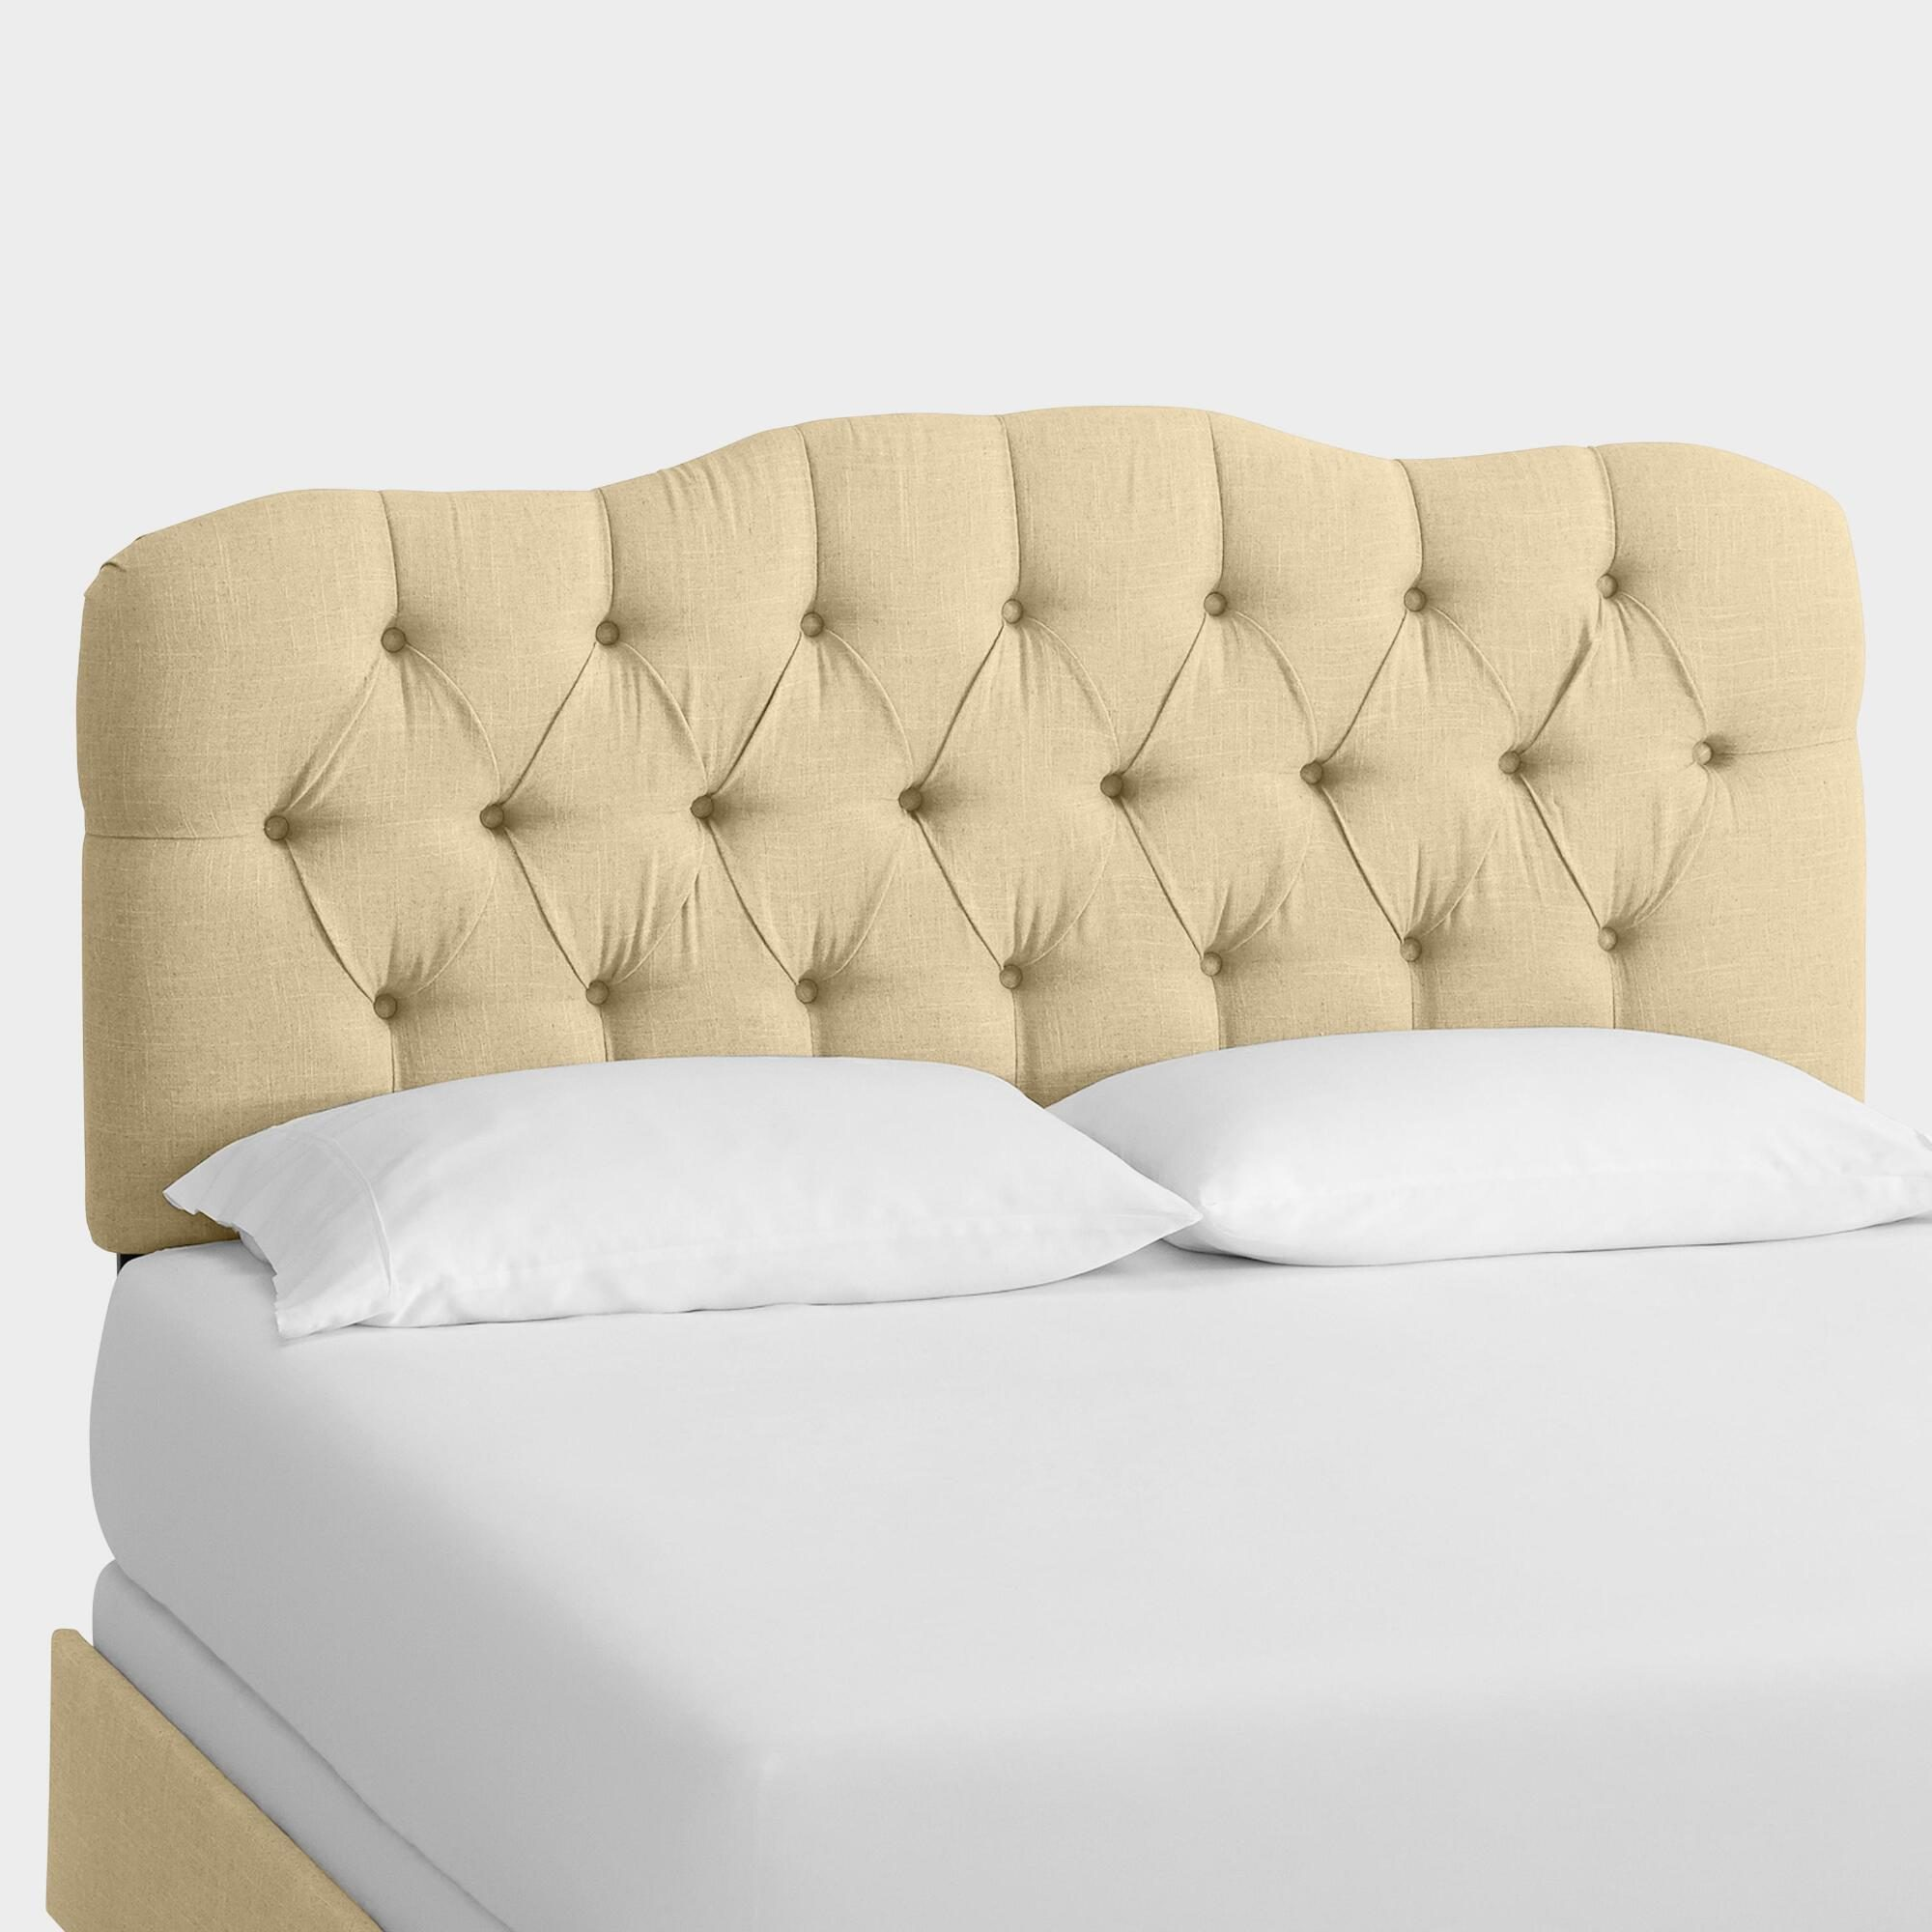 Linen Rae Upholstered Bed: Brown/Natural - Fabric - Full Bed by World Market Full/Sandstone